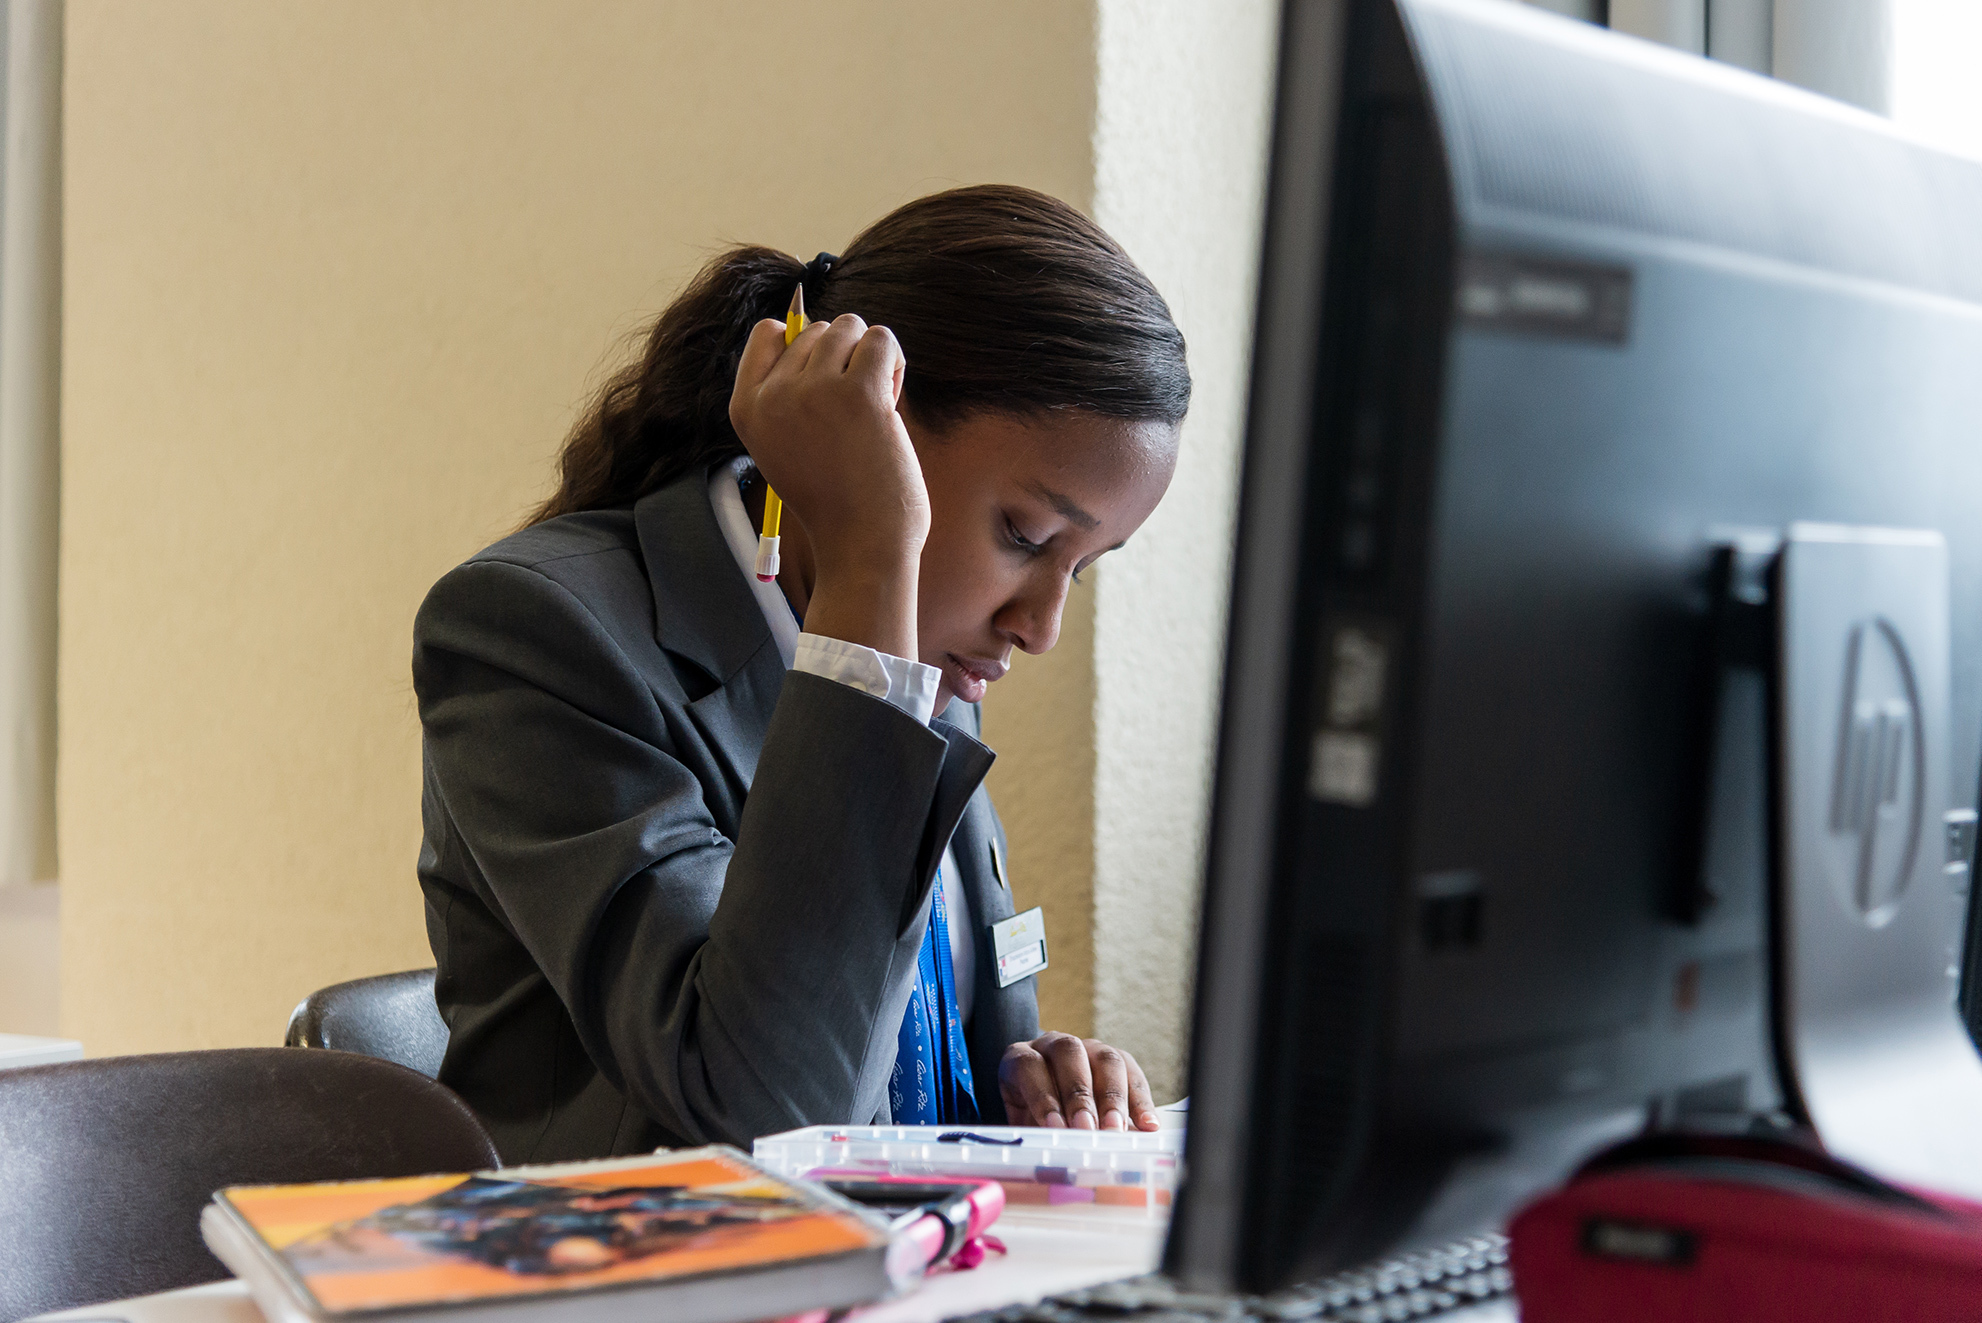 A student is studying at a computer